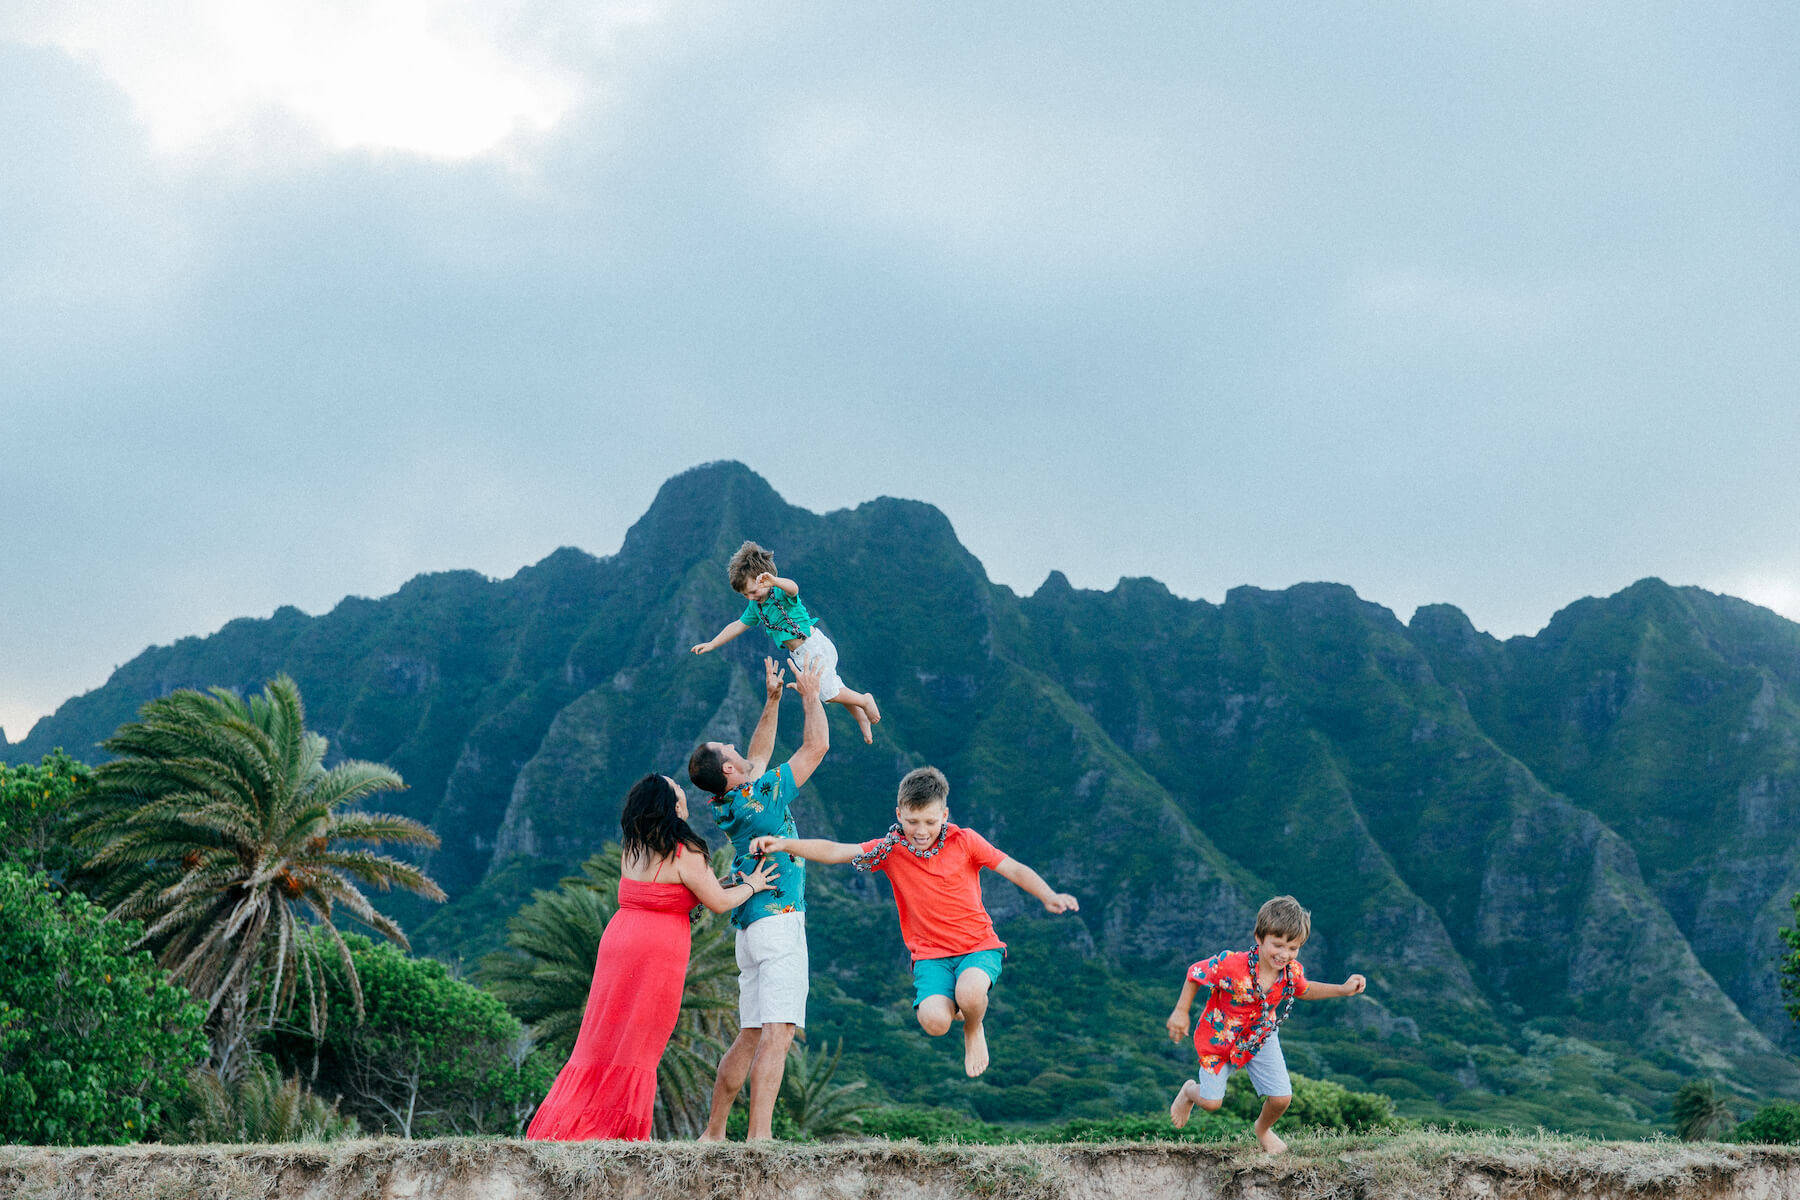 a family of four, the kids are jumping off a small ledge onto the sandy beach in Honolulu, Hawaii